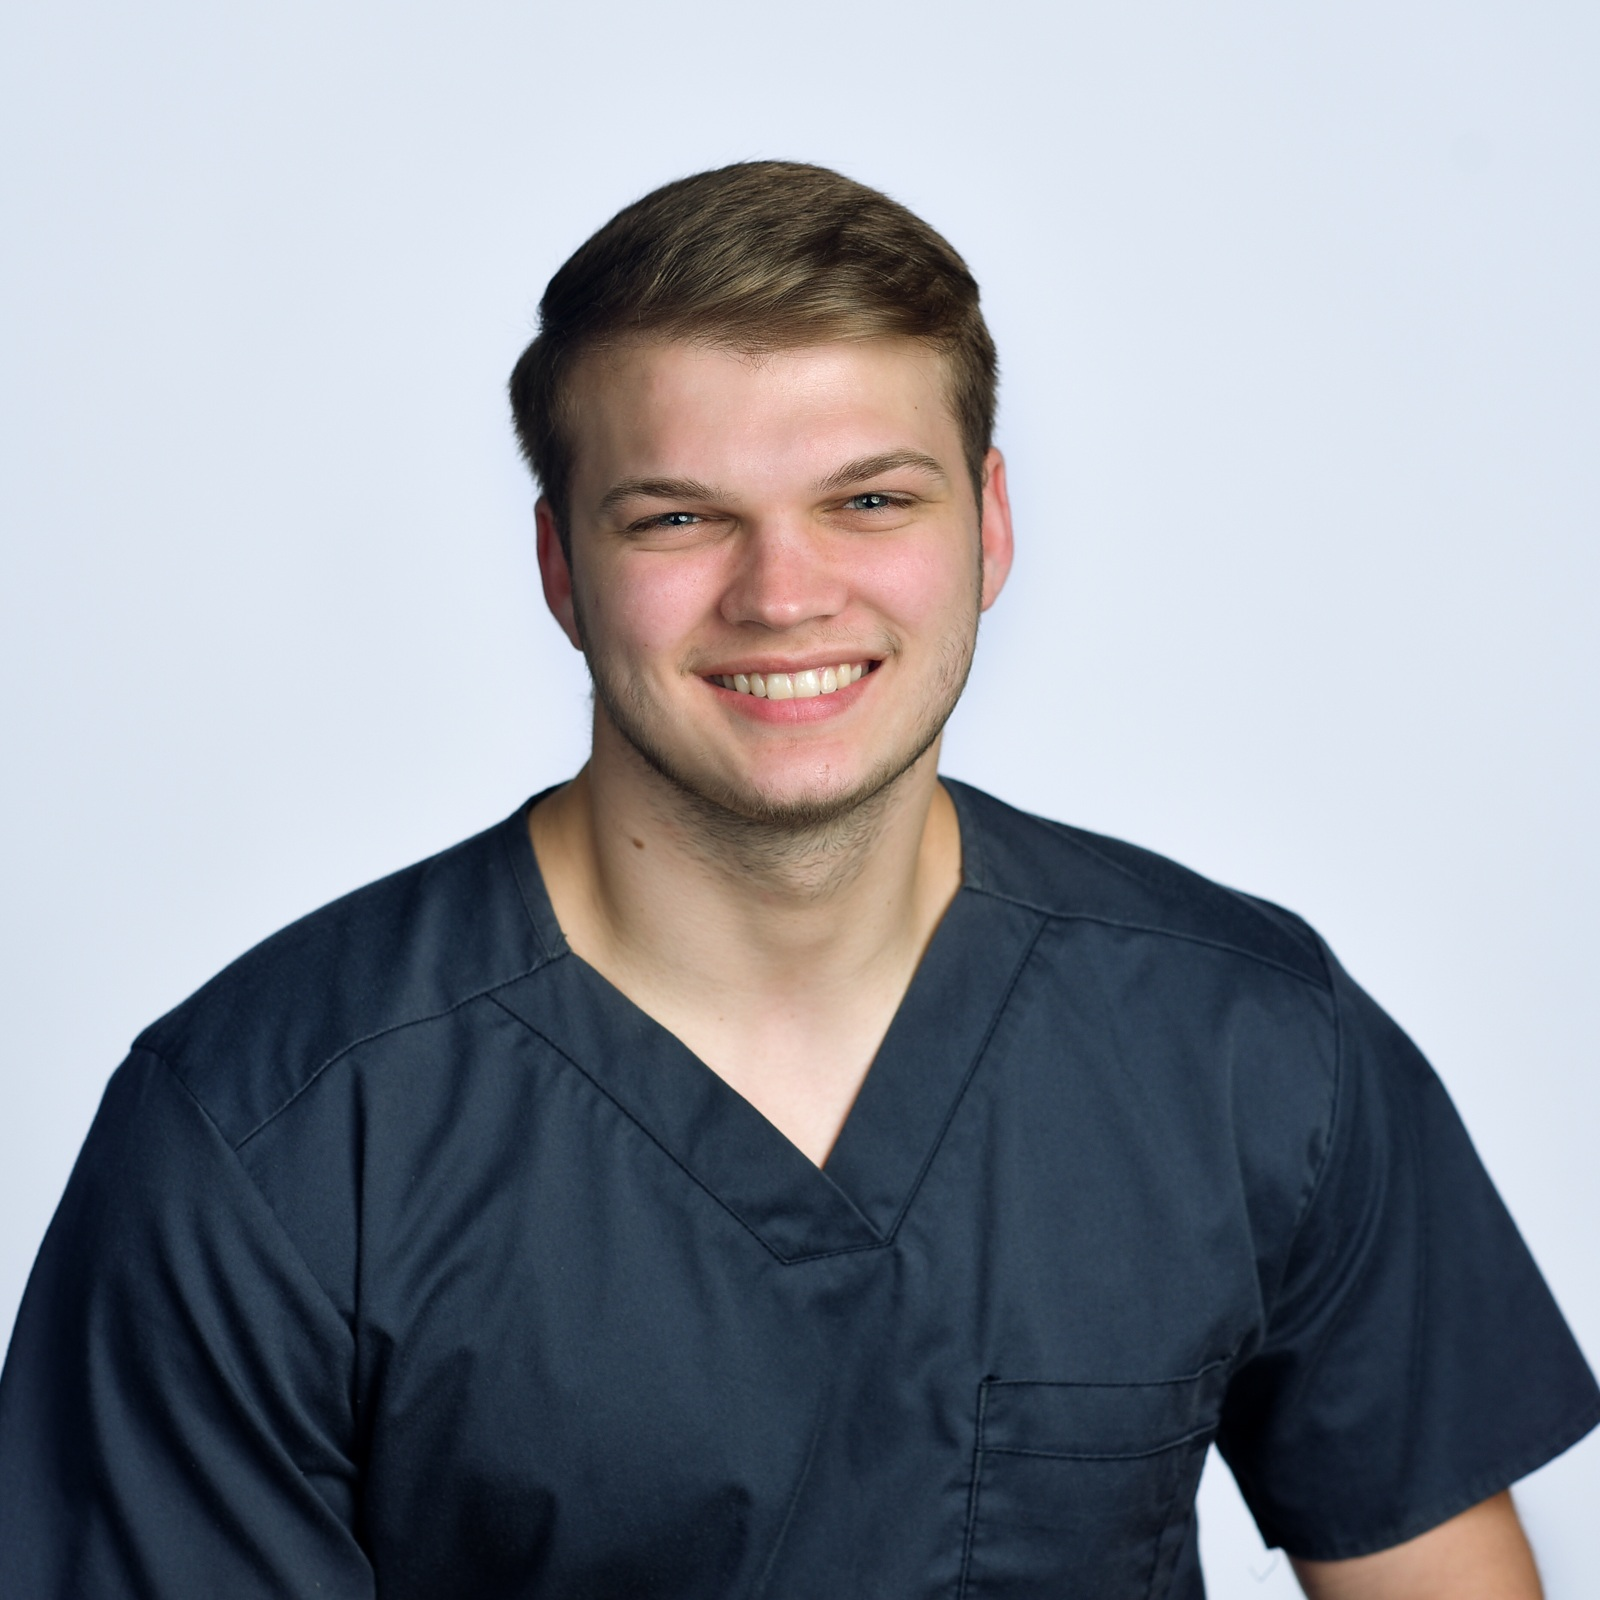 Garrett Sisson - LMT/NMT ALABAMA LICENSE #5264Garret Sisson graduated from Wallace State in 2019 in Therapeutic Massage and received his Alabama State License. He is trained in Swedish massage, deep tissue, sports, stretching, and pregnancy massage. He is dedicated to help anyone to promote healthy lifestyle through therapeutic massage.